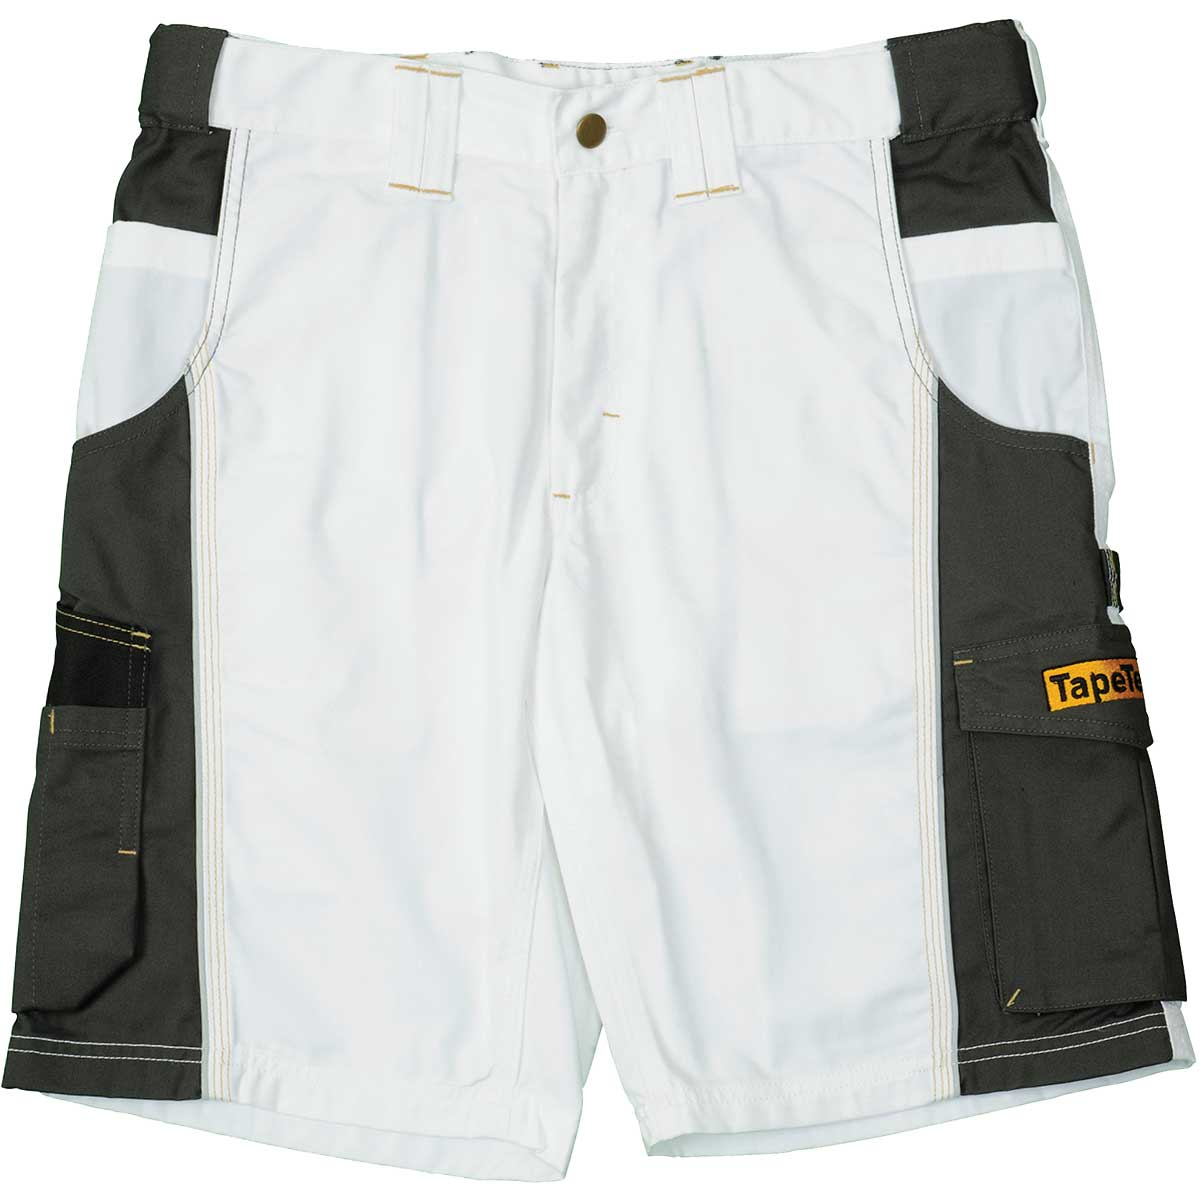 TapeTech Premium Work Shorts Size - 46